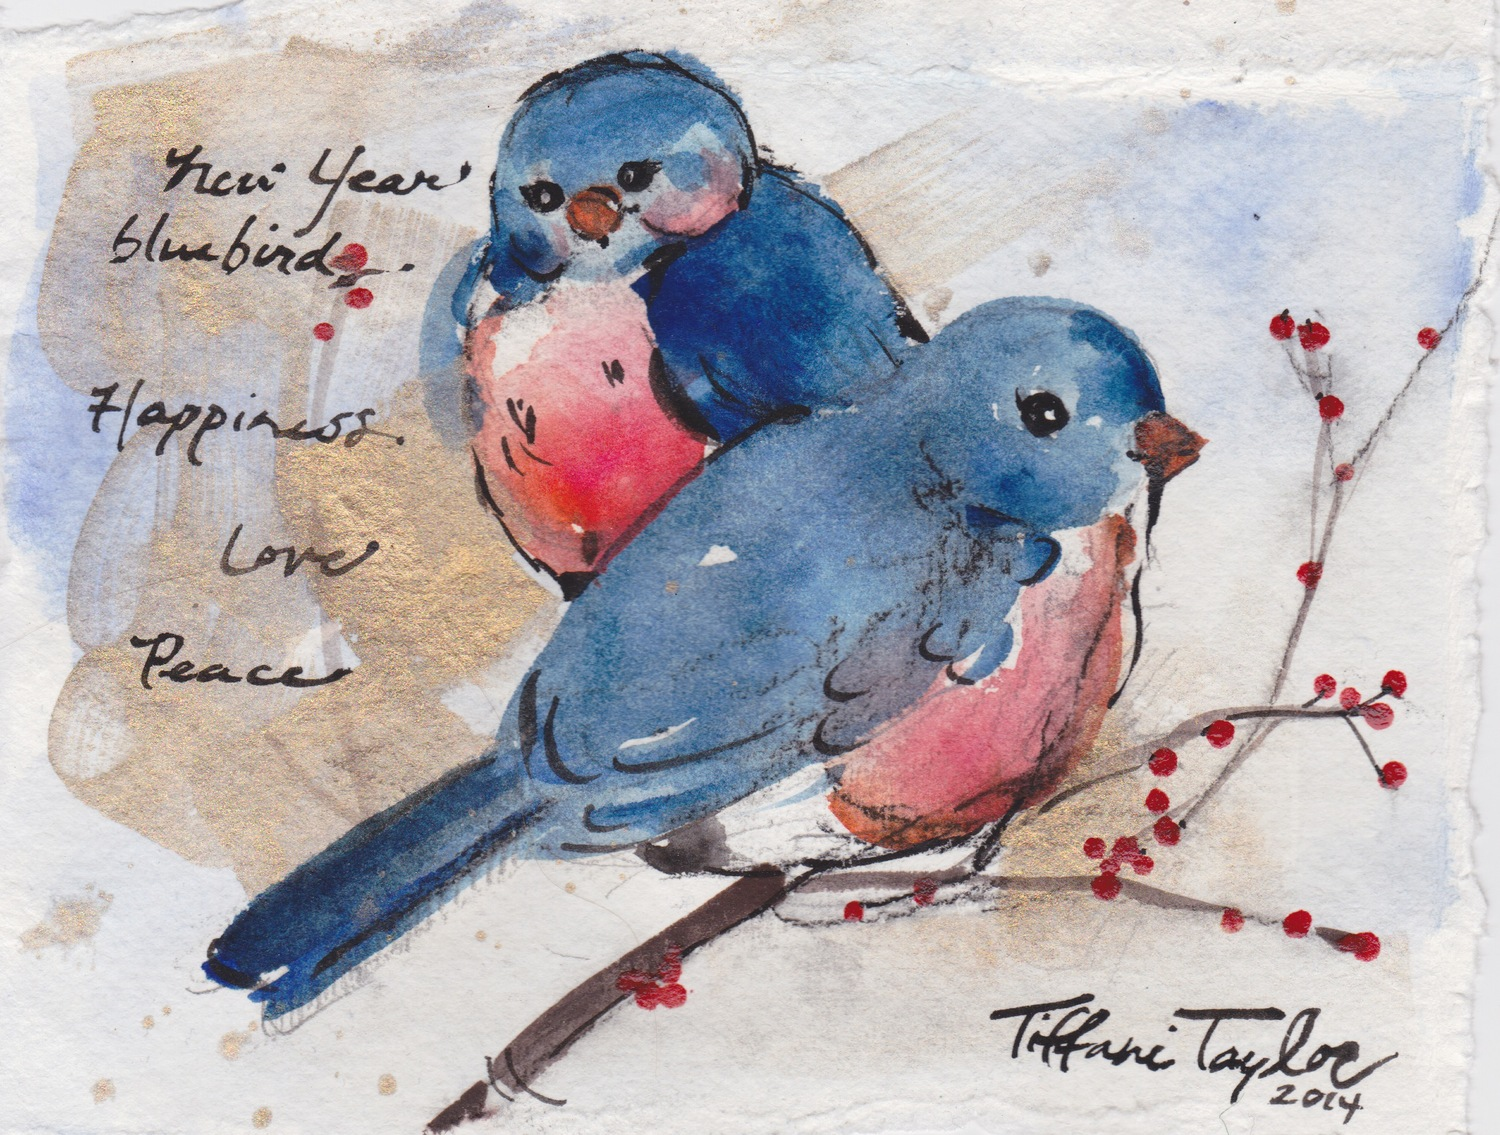 New Year Bluebirds: Happiness, Love, and Peace...